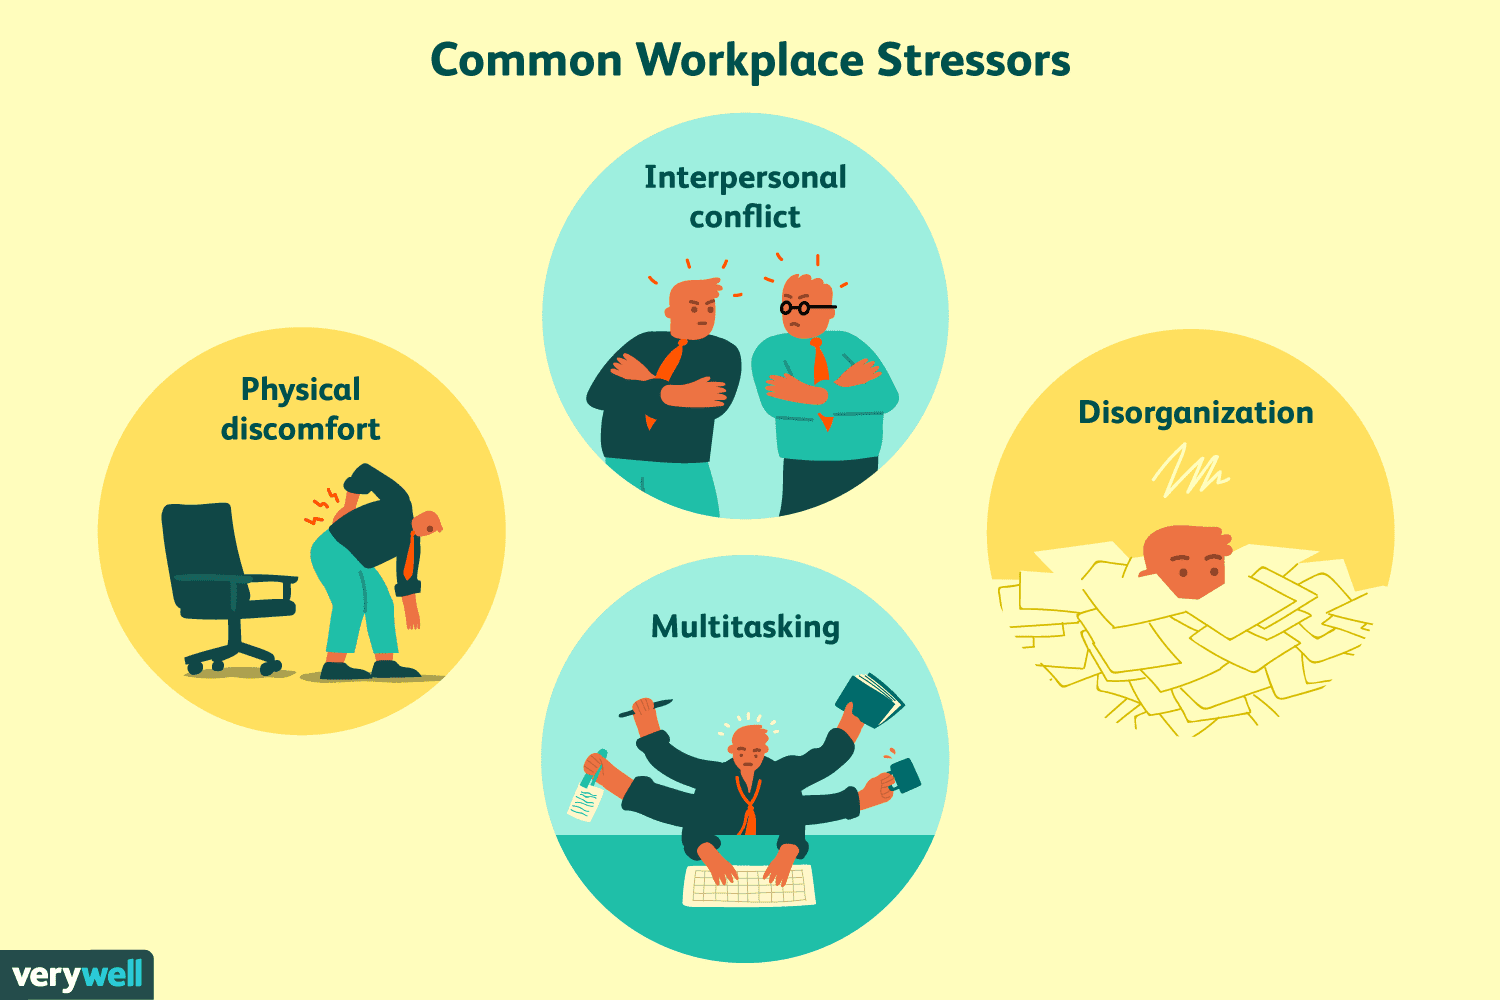 how-to-deal-with-stress-at-work-3145273_FINAL-5be9954746e0fb0026a730c3